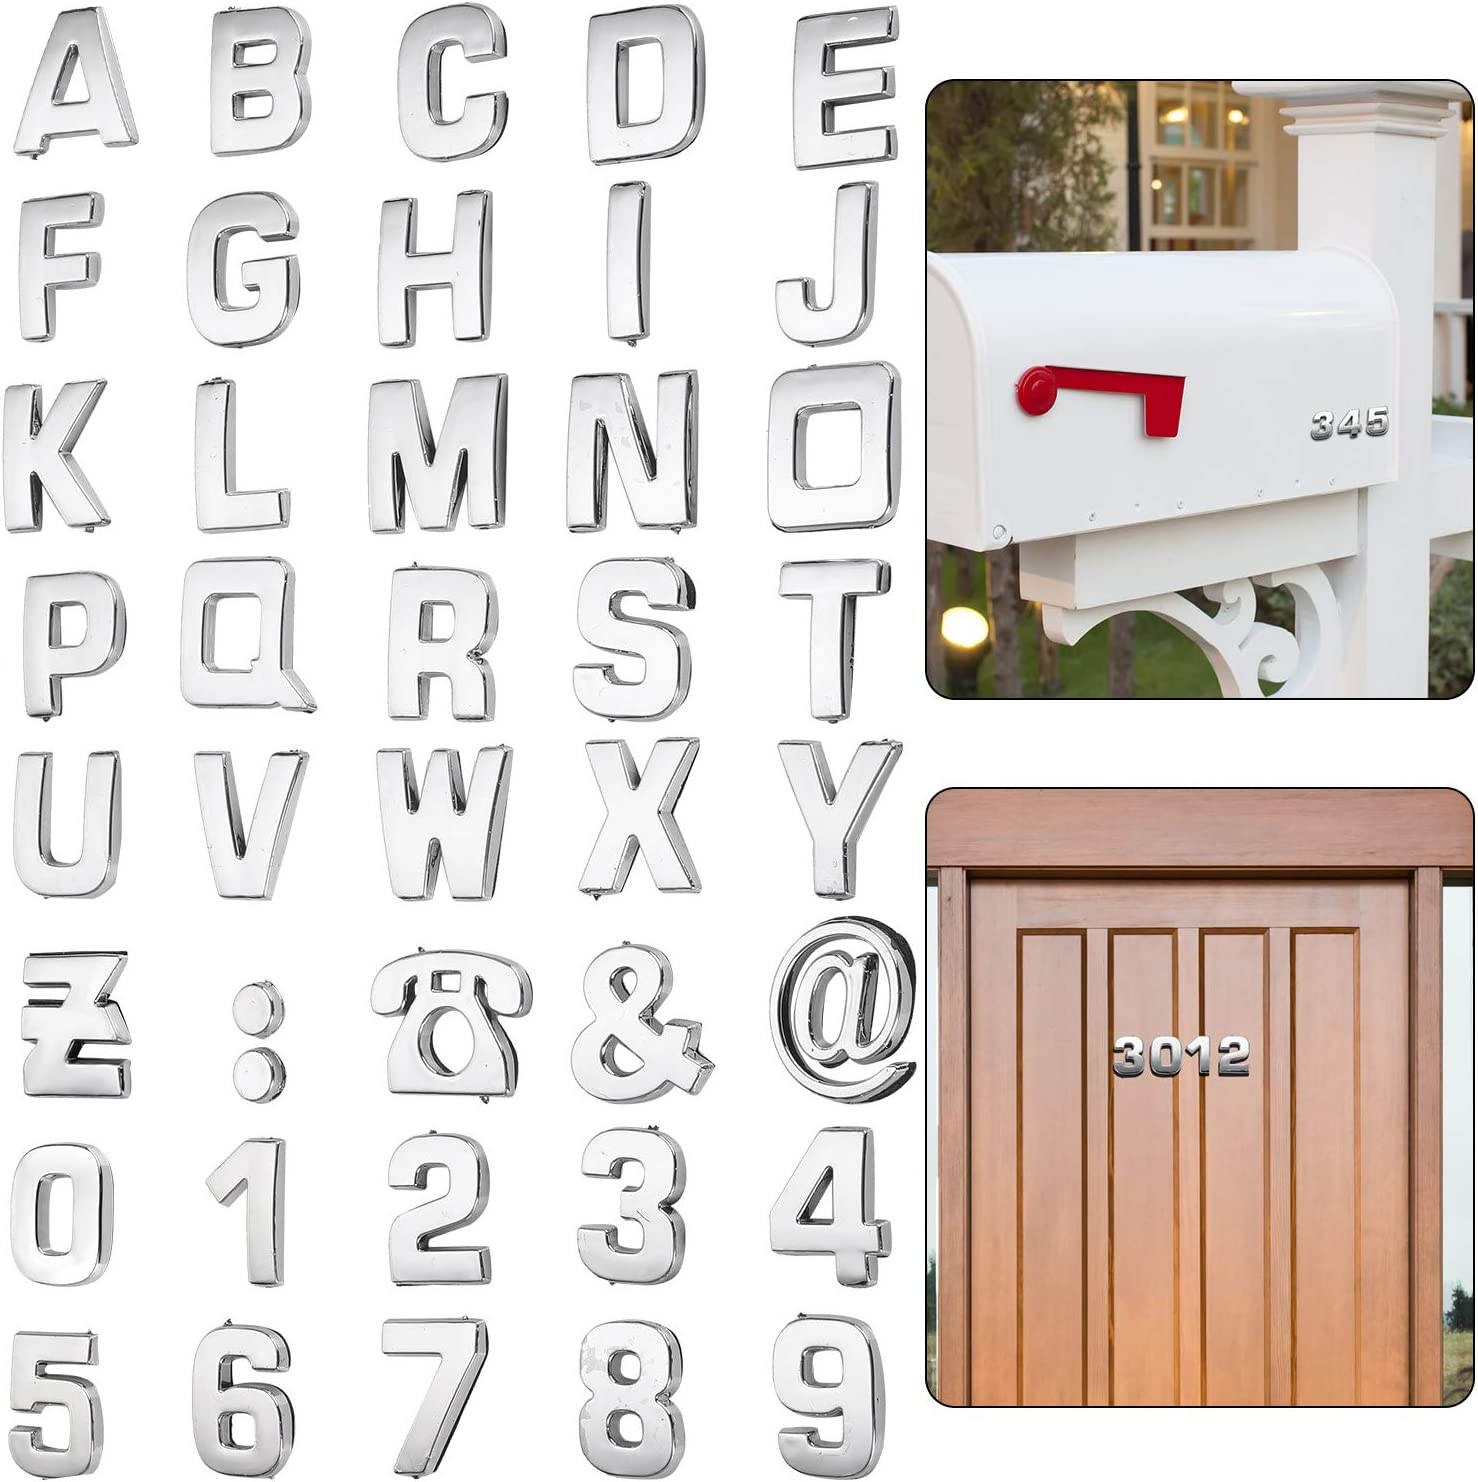 Outus 40 Pieces 3D Mailbox Number 0-9 Stickers and Letters Symbols Alphabet Self-Adhesive Mailbox Stickers House Metal Mailbox Address Street Stickers for Door Apartment Residence and Mailbox Signs